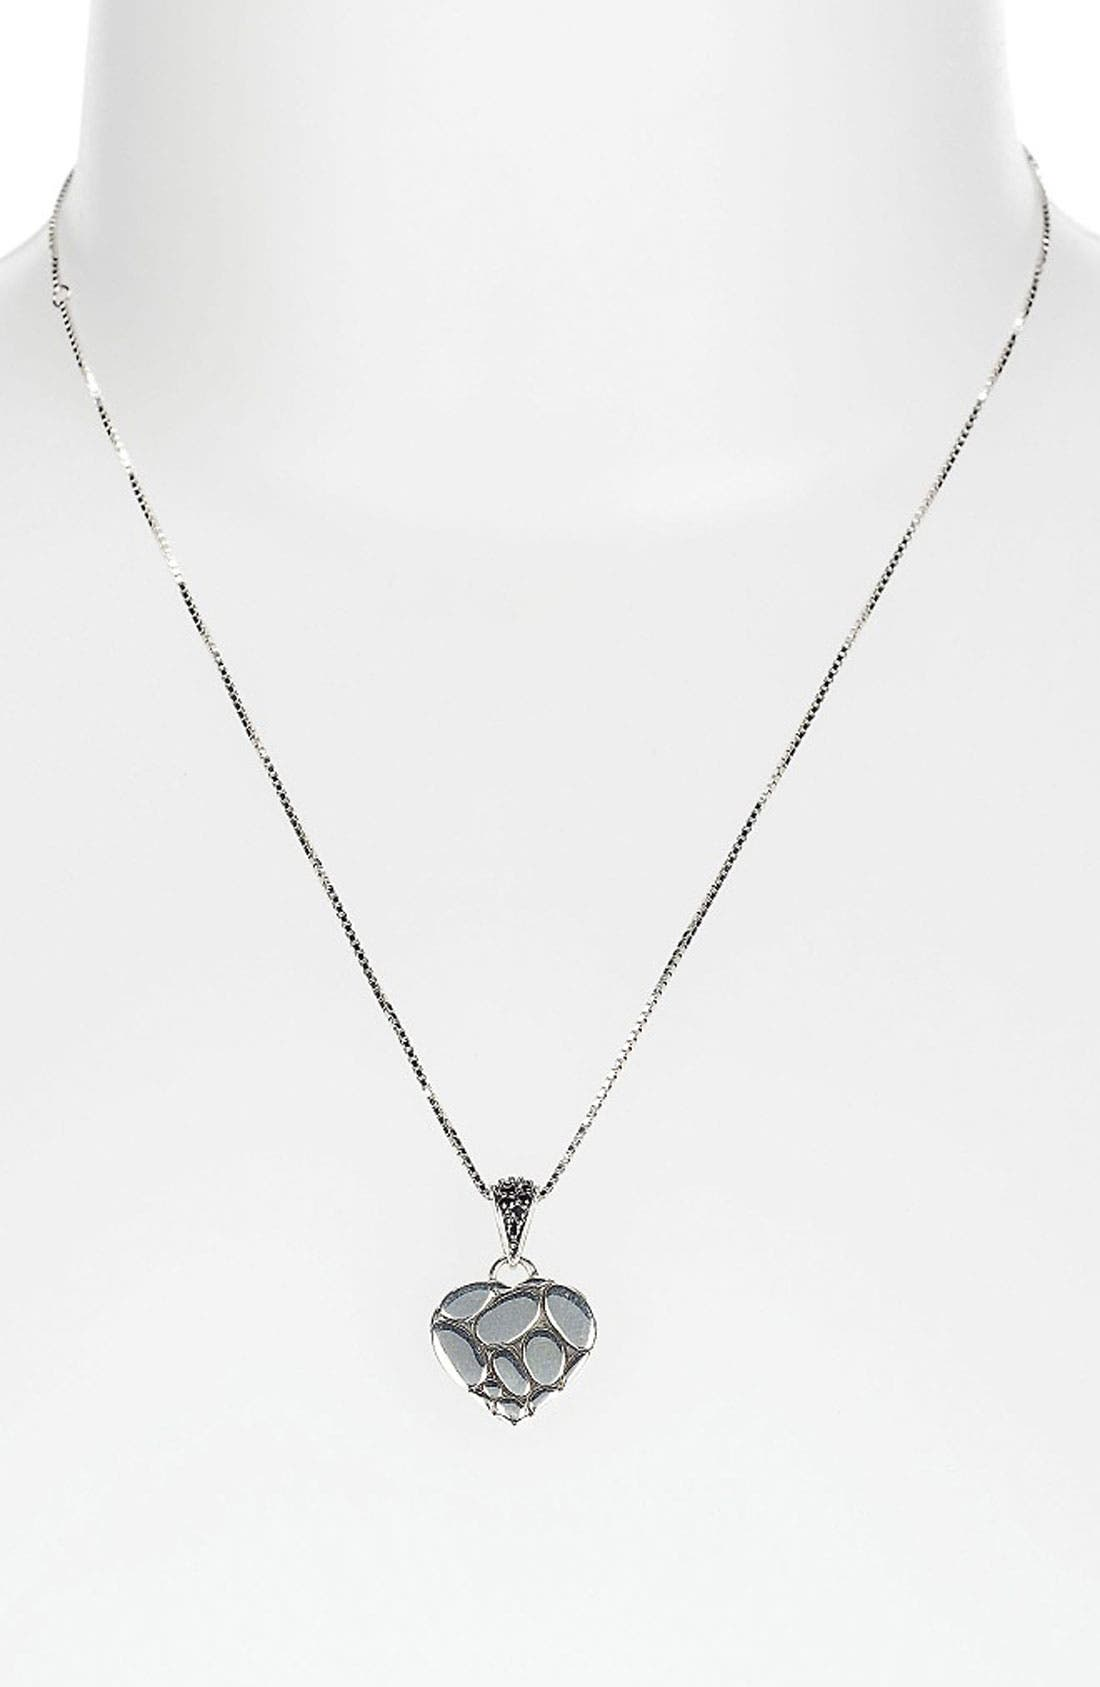 Alternate Image 1 Selected - John Hardy 'Kali Silver Lava' Boxed Heart Pendant Necklace (Nordstrom Exclusive)